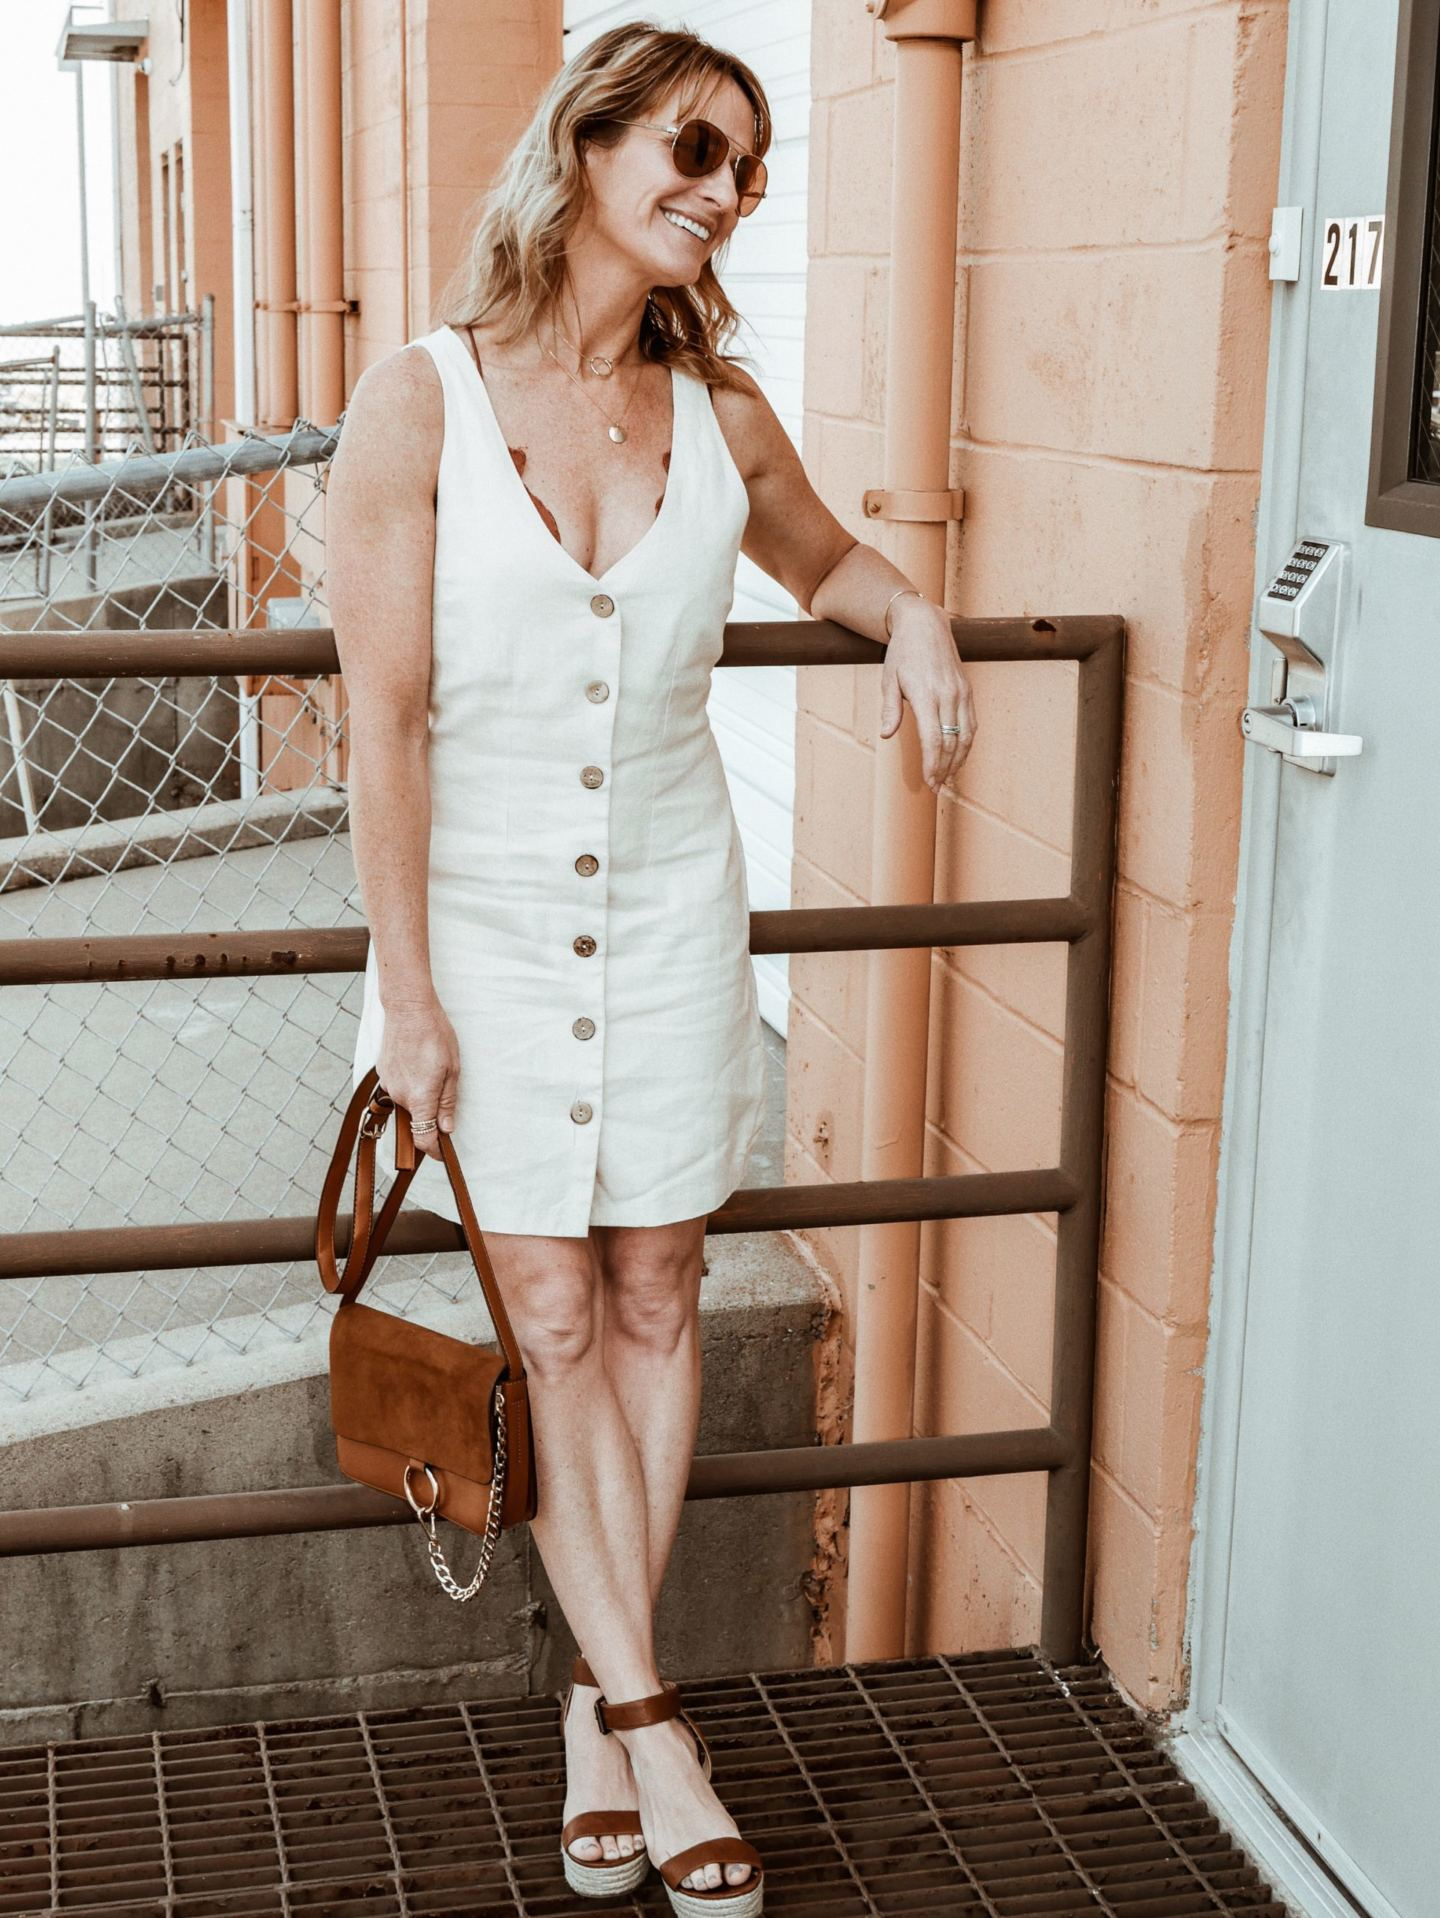 915aa60144 The Absolute Best Forever 21 Finds  Dresses - Oh Darling Blog